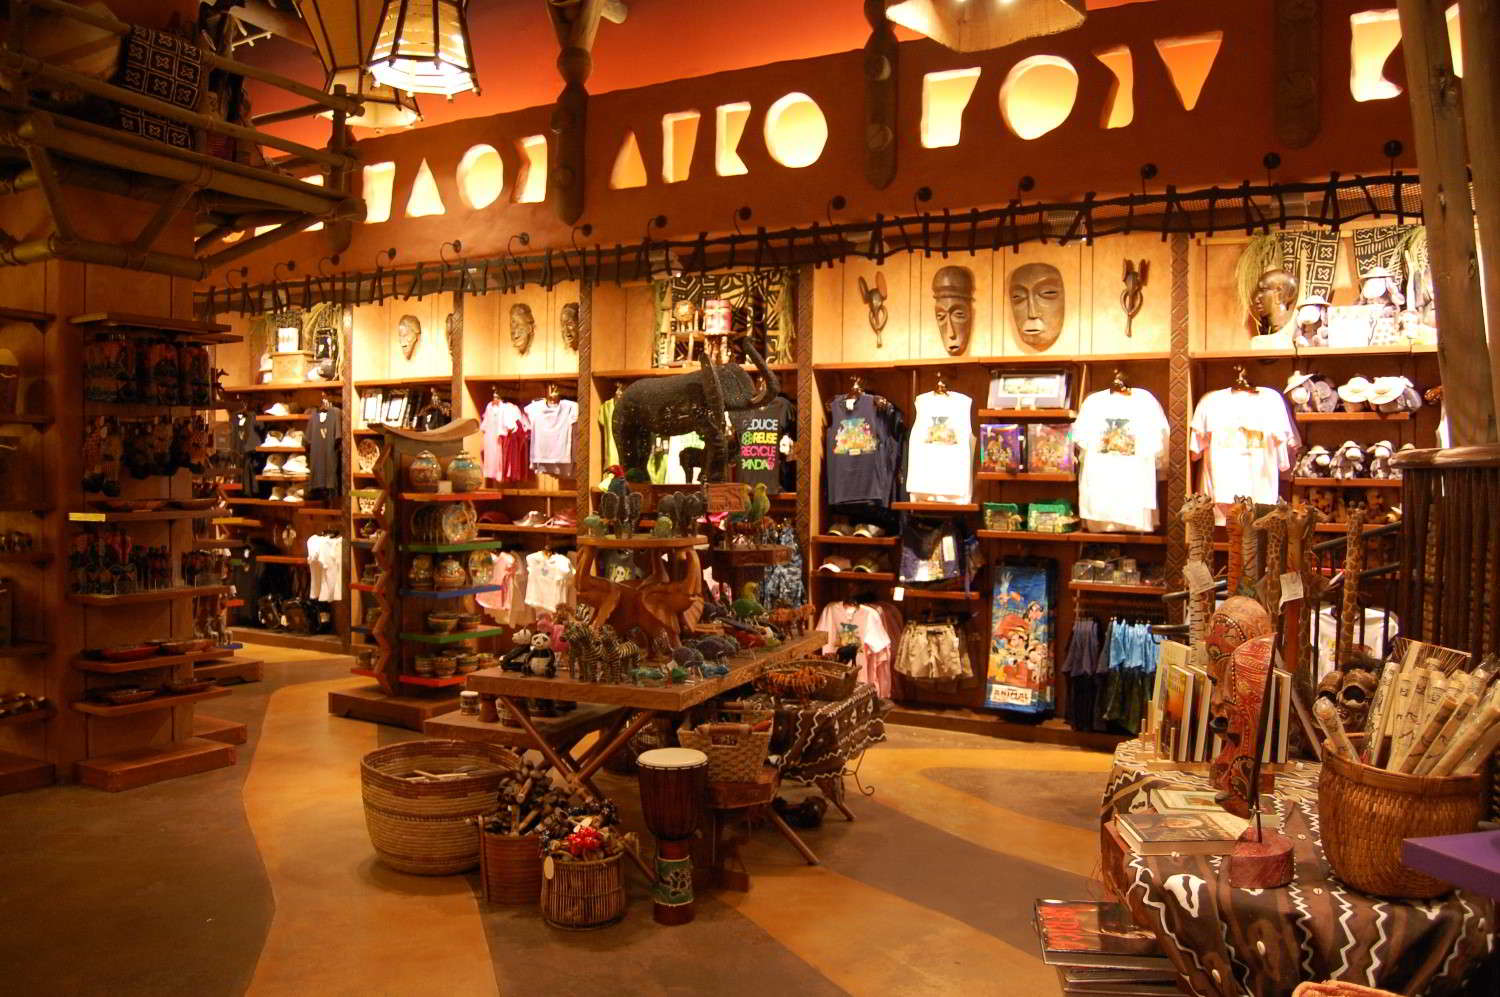 Jambo House's Zawadi Marketplace is one of most unique gift shops at Disney World.